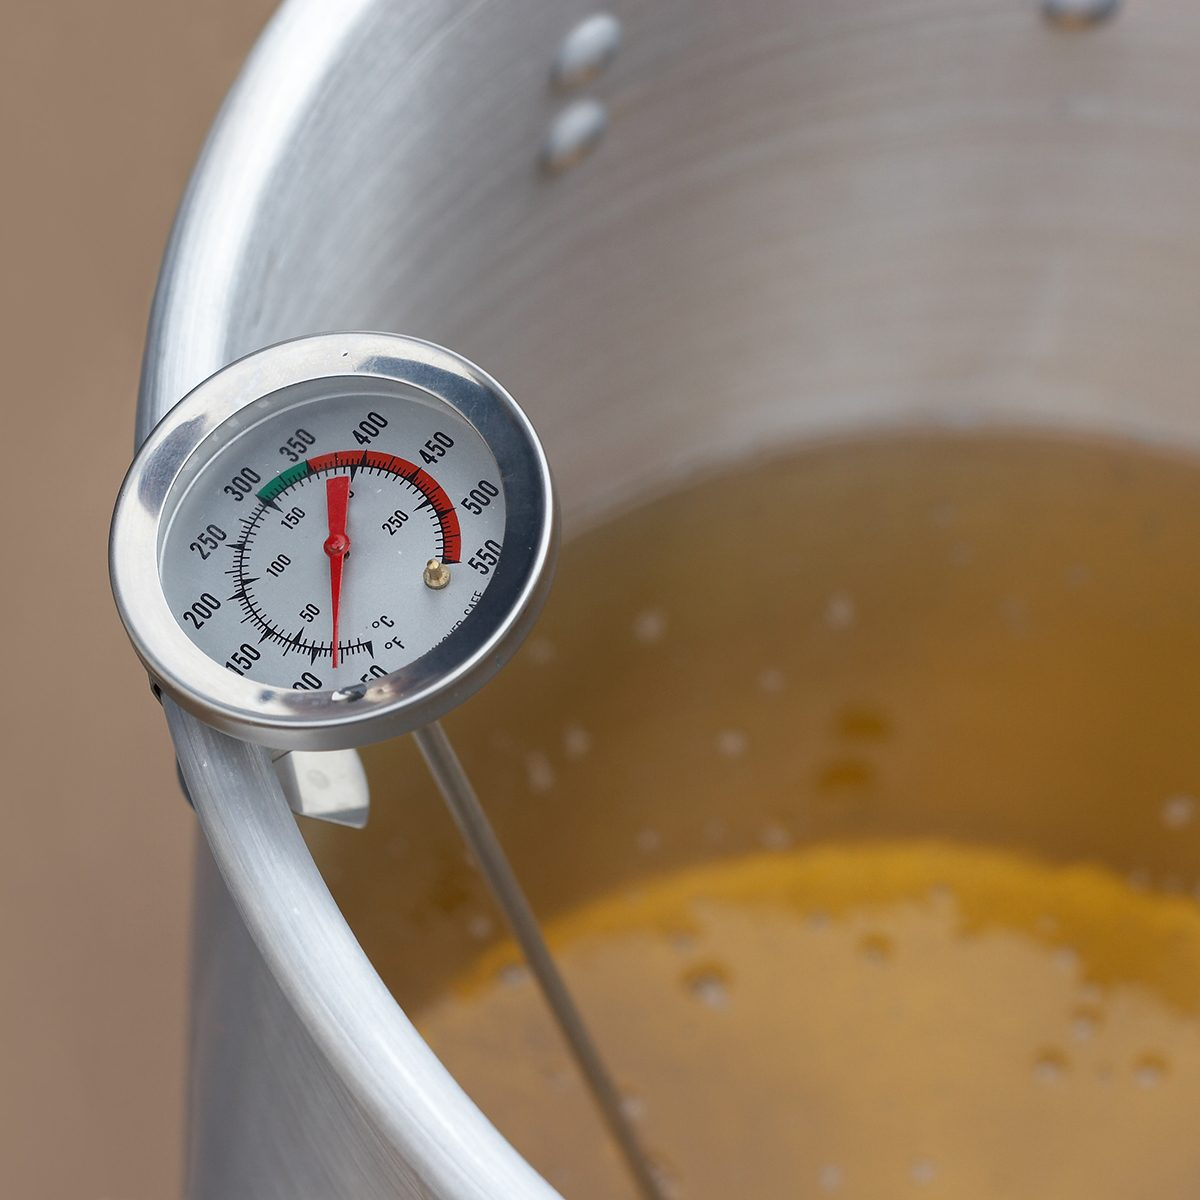 Thermometer in a pot of oil